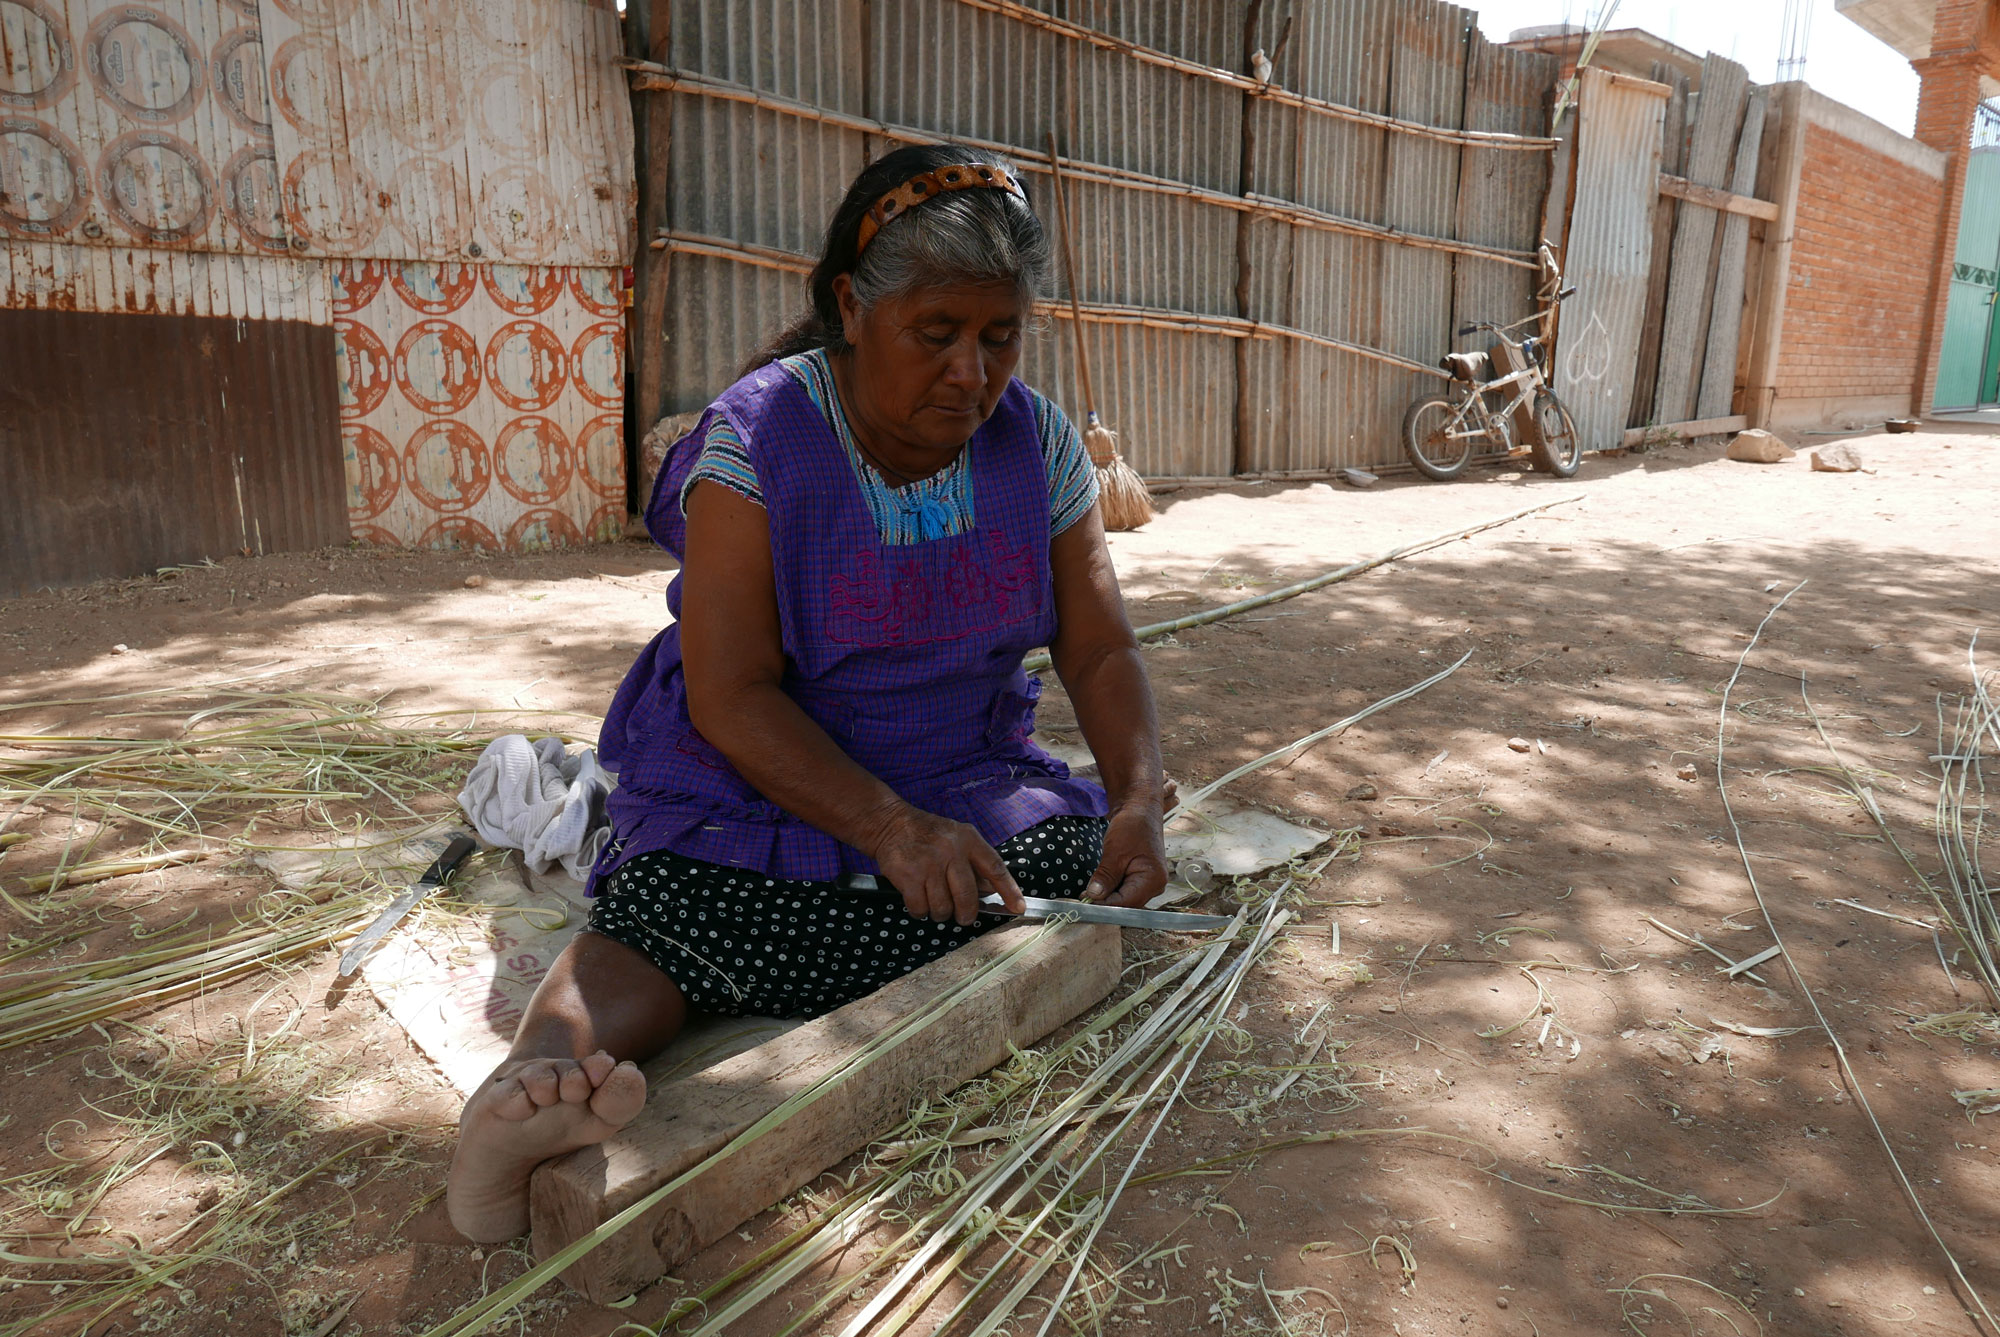 Artisan Cutting Carrizo Reeds Ready for Weaving Baskets in Oaxaca Mexico - www.nidocollective.com/carrizoweaving #carrizo #canastascarrizo #basketweaving